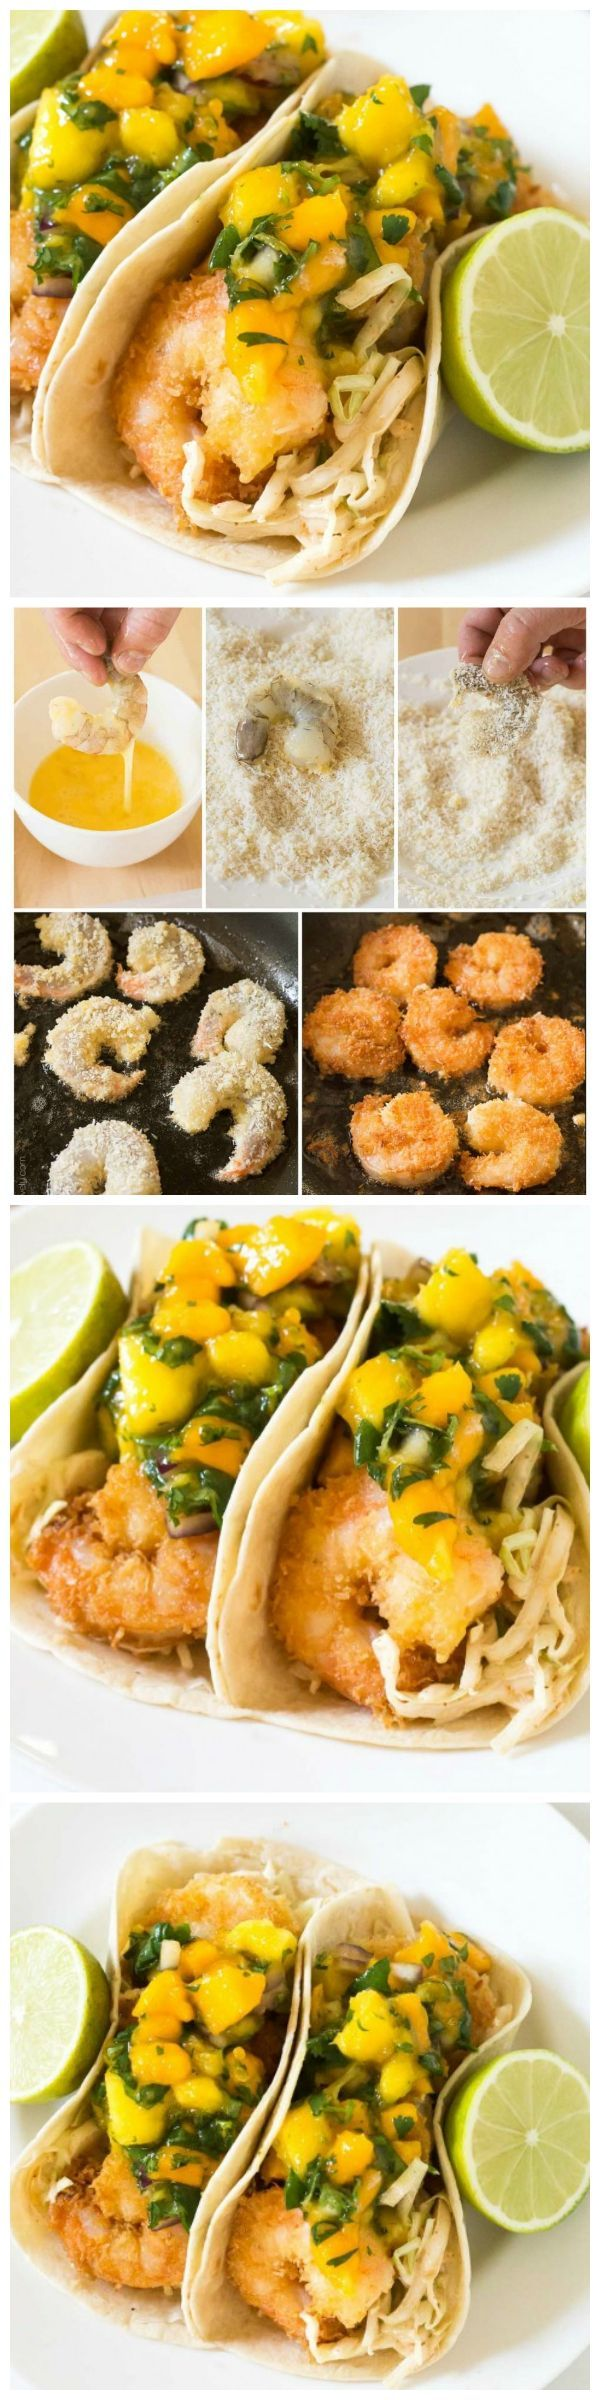 Tropical coconut shrimp tacos served with a chili lime coleslaw & mango papaya salsa. Seriously the best taco I've ever had!